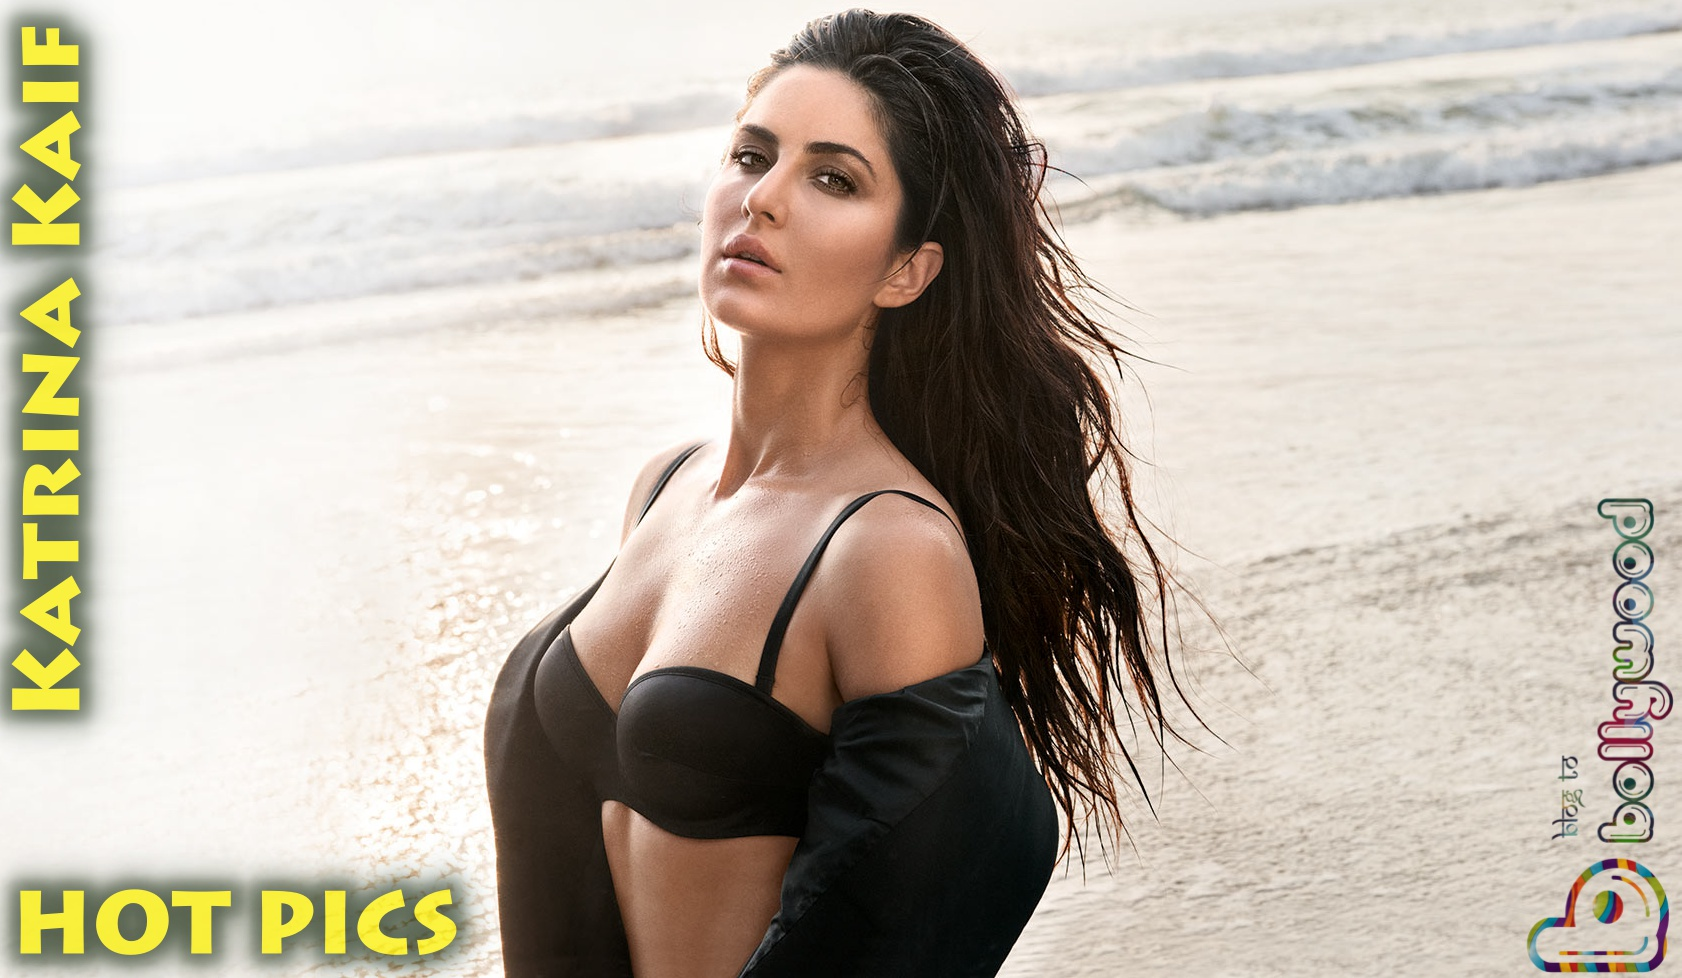 Katrina Kaif Hot Pics: 11 Smoking Hot and Sexy Photos of Katrina Kaif